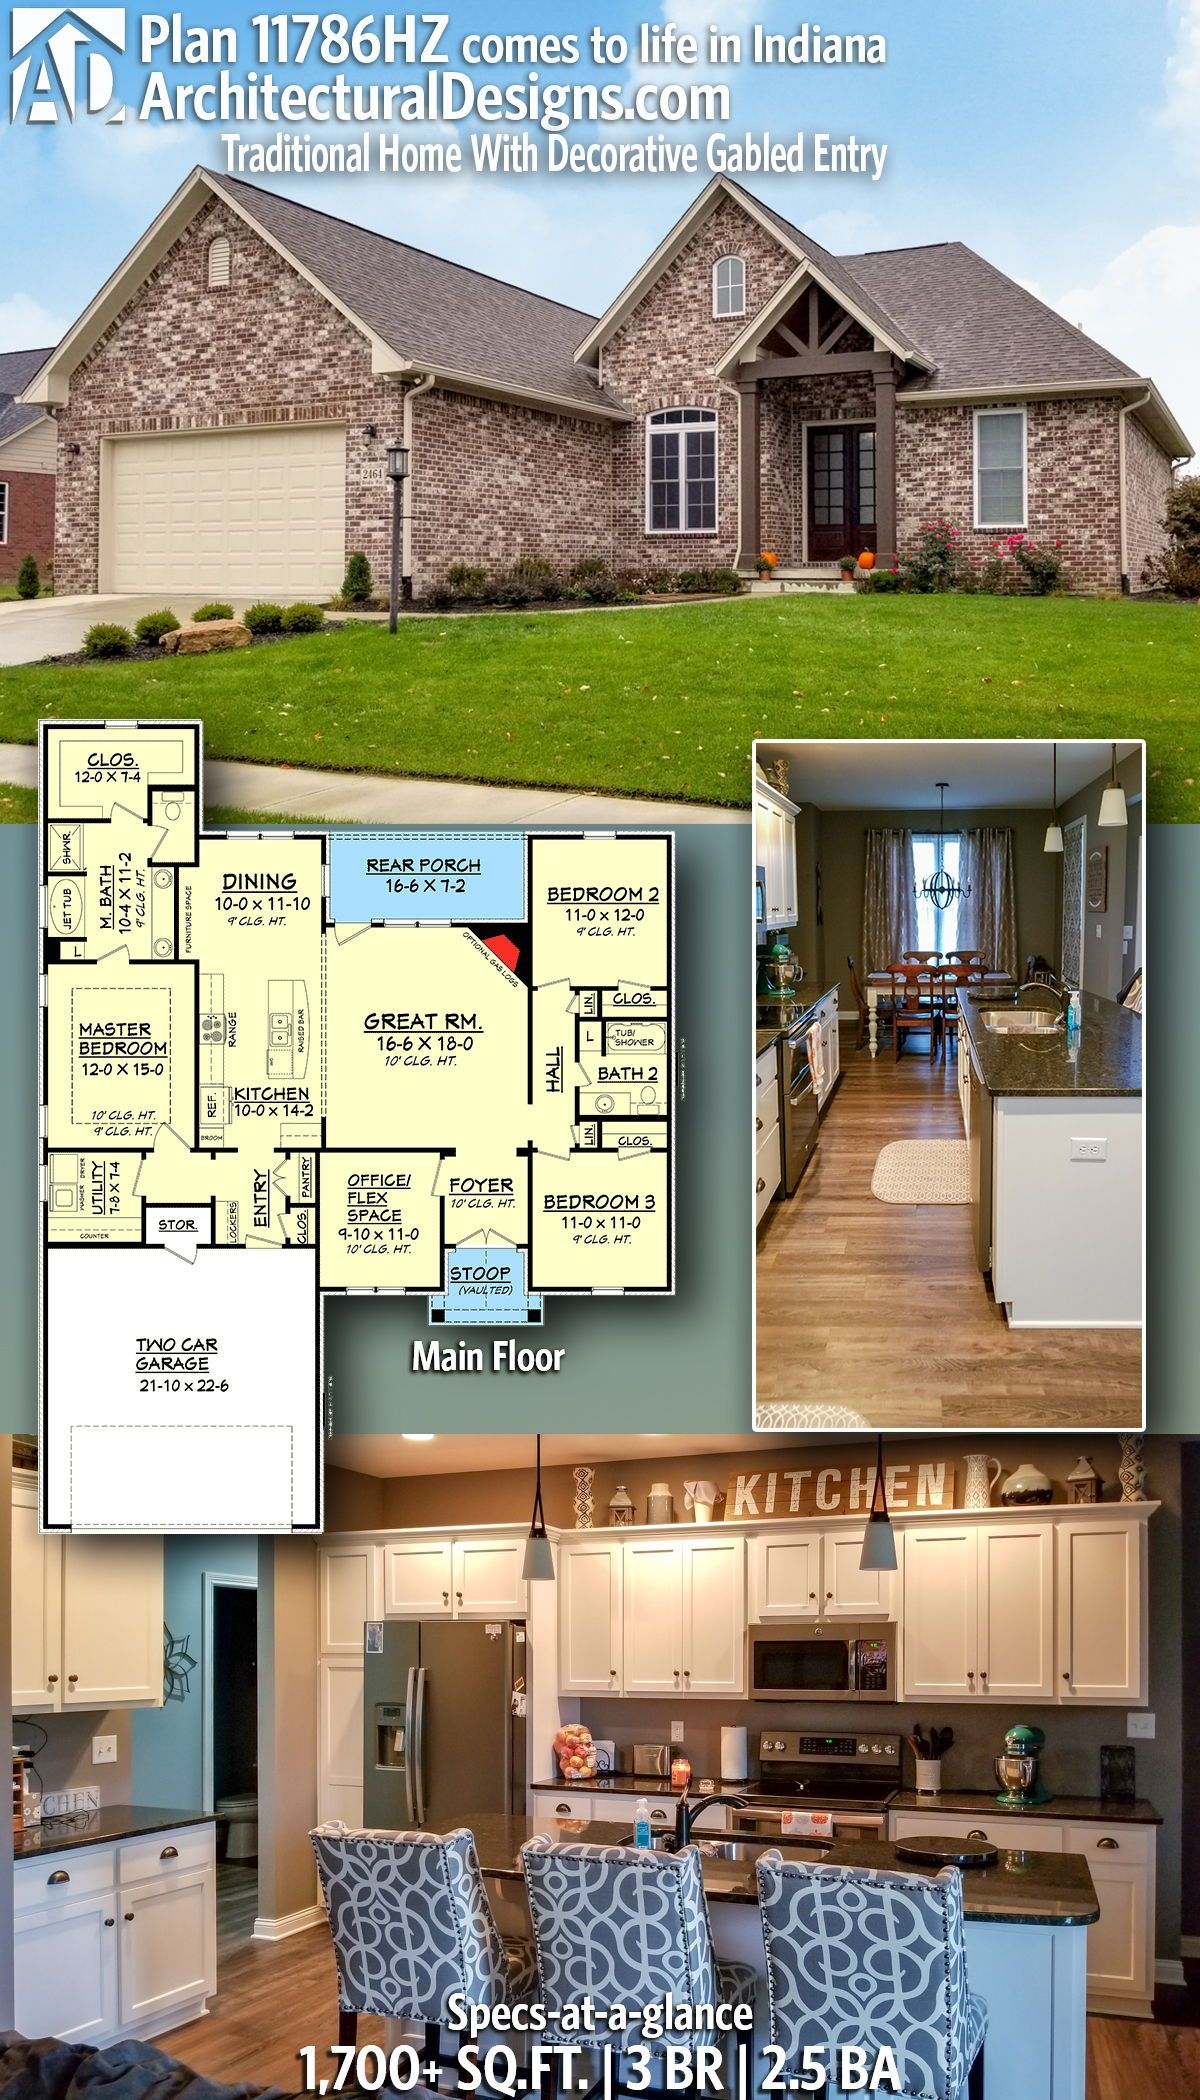 Architectural designs house plan hz client built in indiana bedrooms baths square feet ready when you are also rh pinterest